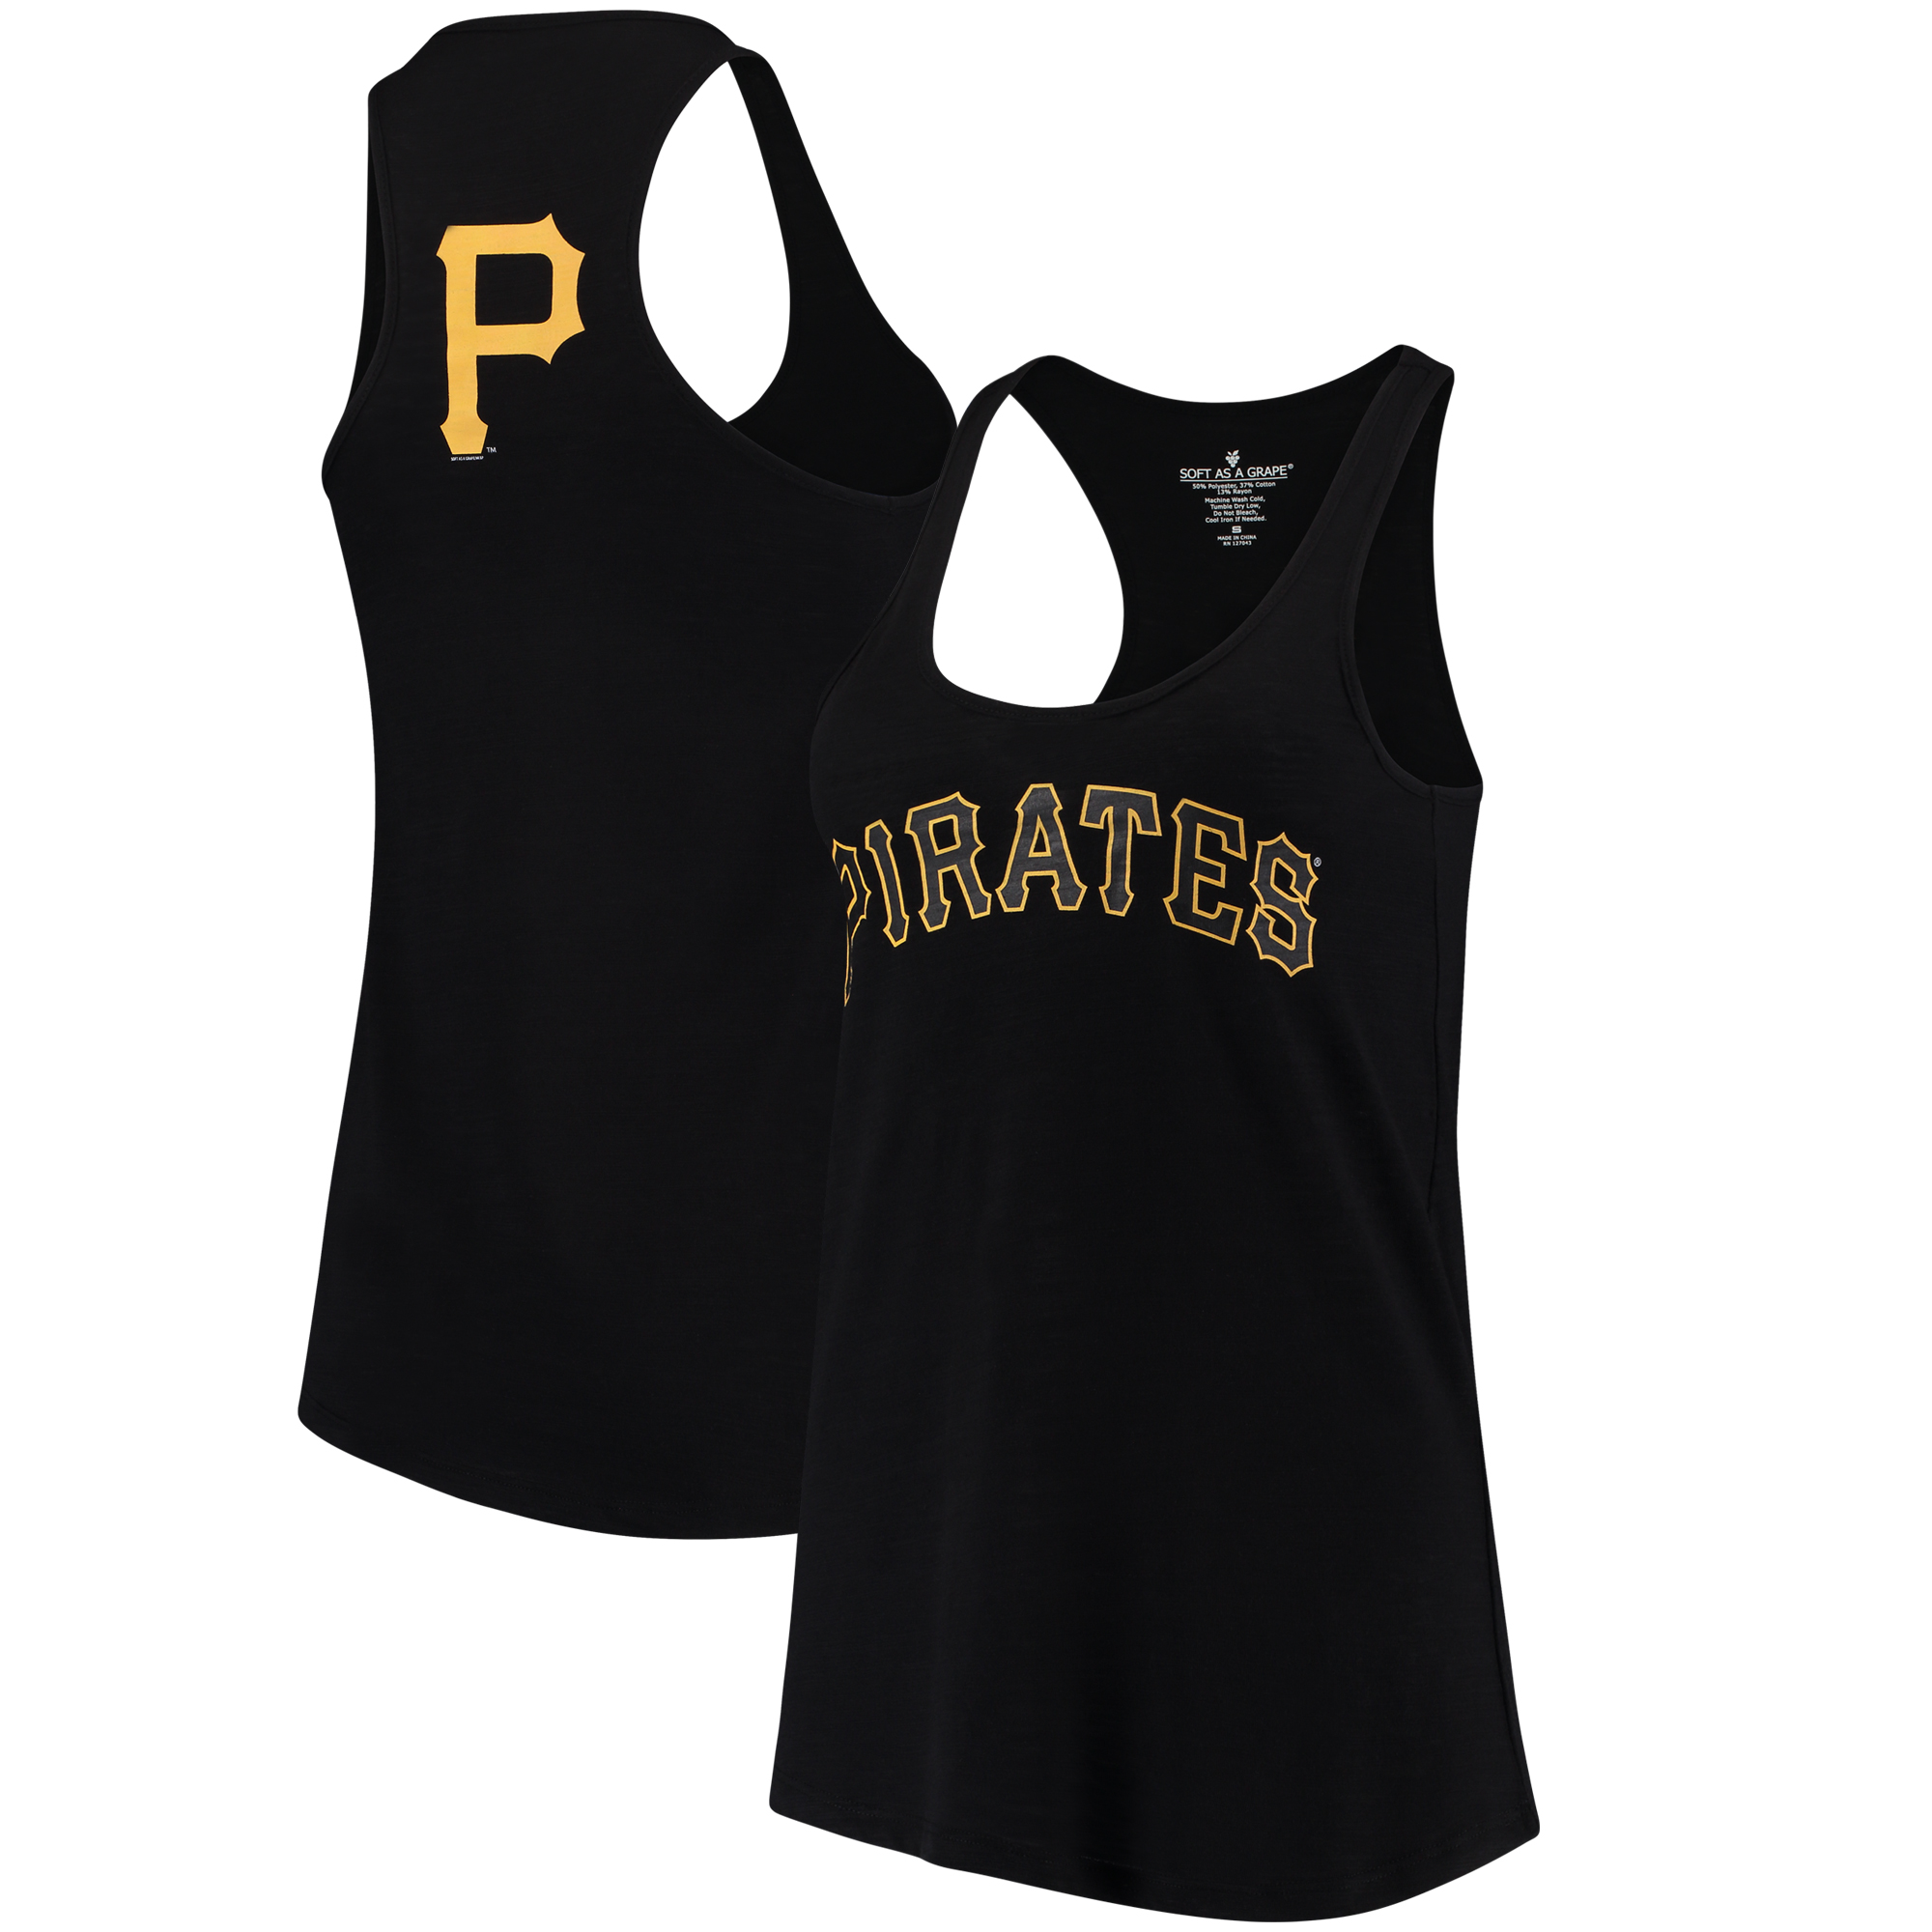 Pittsburgh Pirates Soft As A Grape Women's Front & Back Tri-Blend Racerback Tank Top - Black